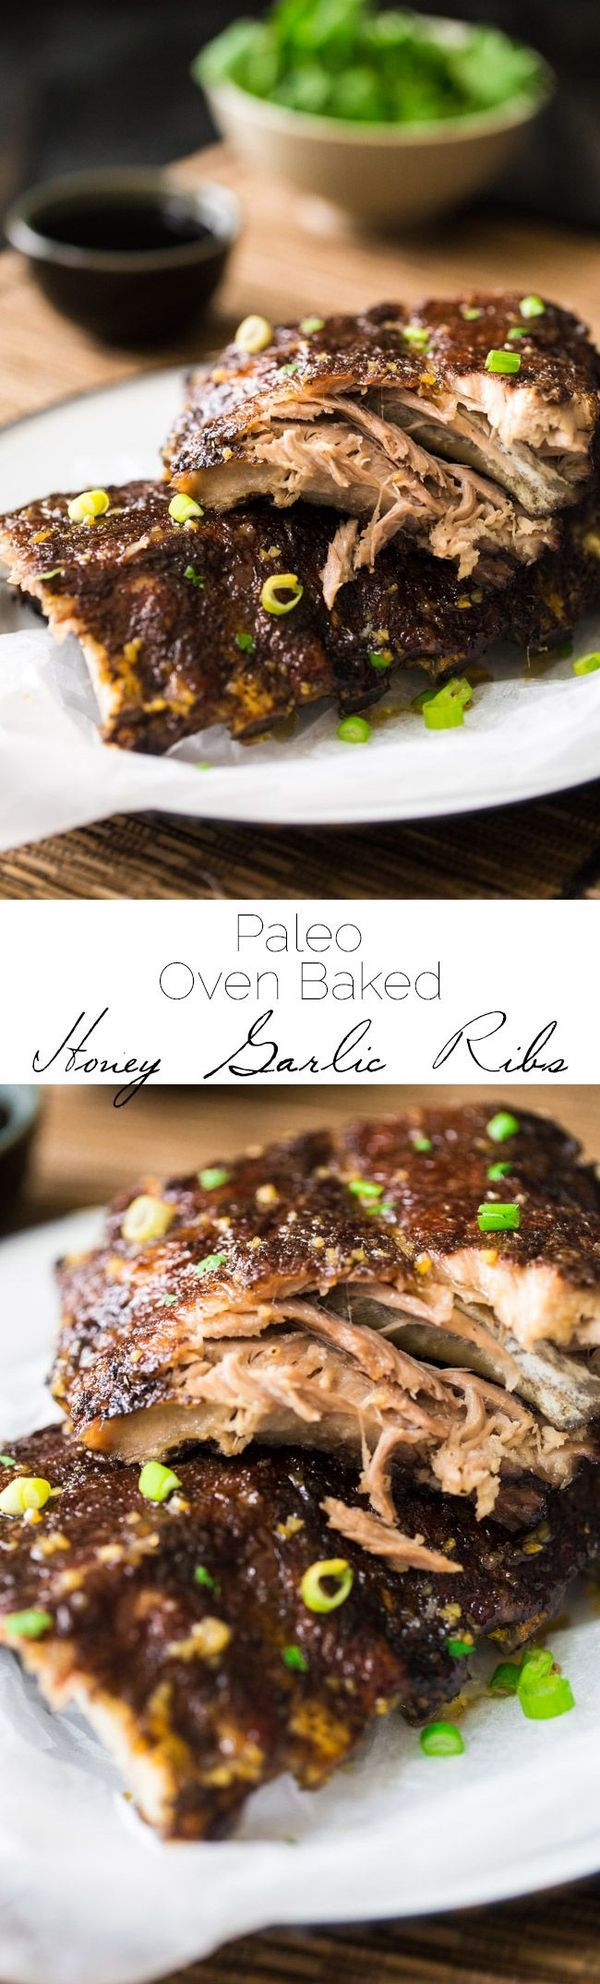 Paleo 5 Spice Honey Garlic Oven Baked Ribs - Sticky, sweet, healthier ribs that are gluten free, Paleo and made in the oven. These fall RIGHT OFF THE BONE!